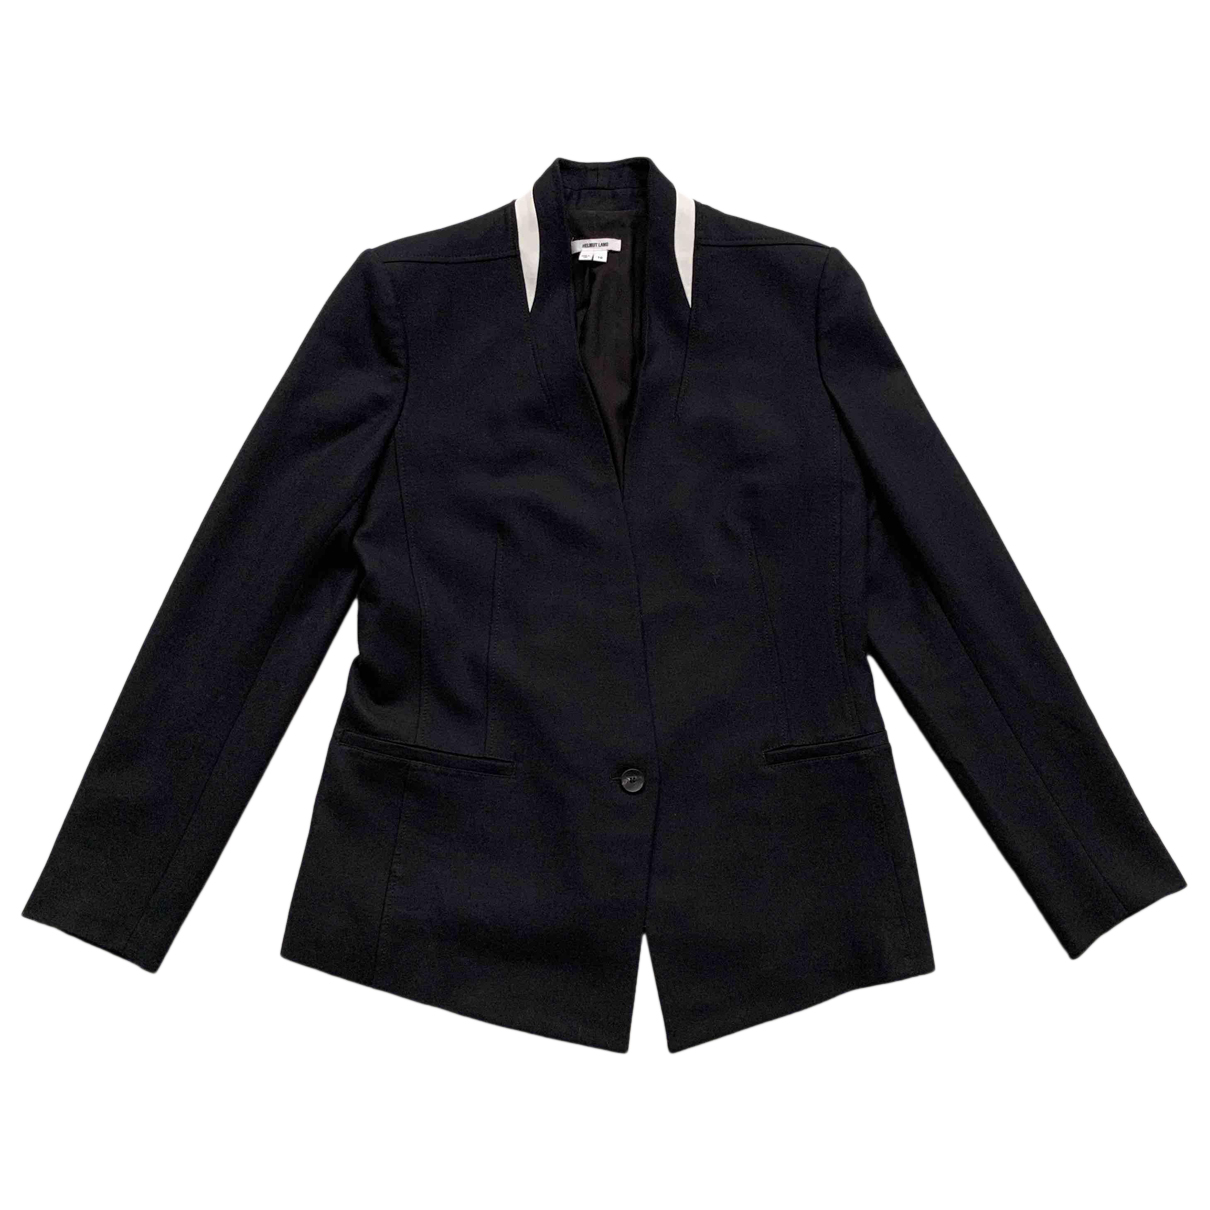 Helmut Lang N Black jacket for Women 10 US